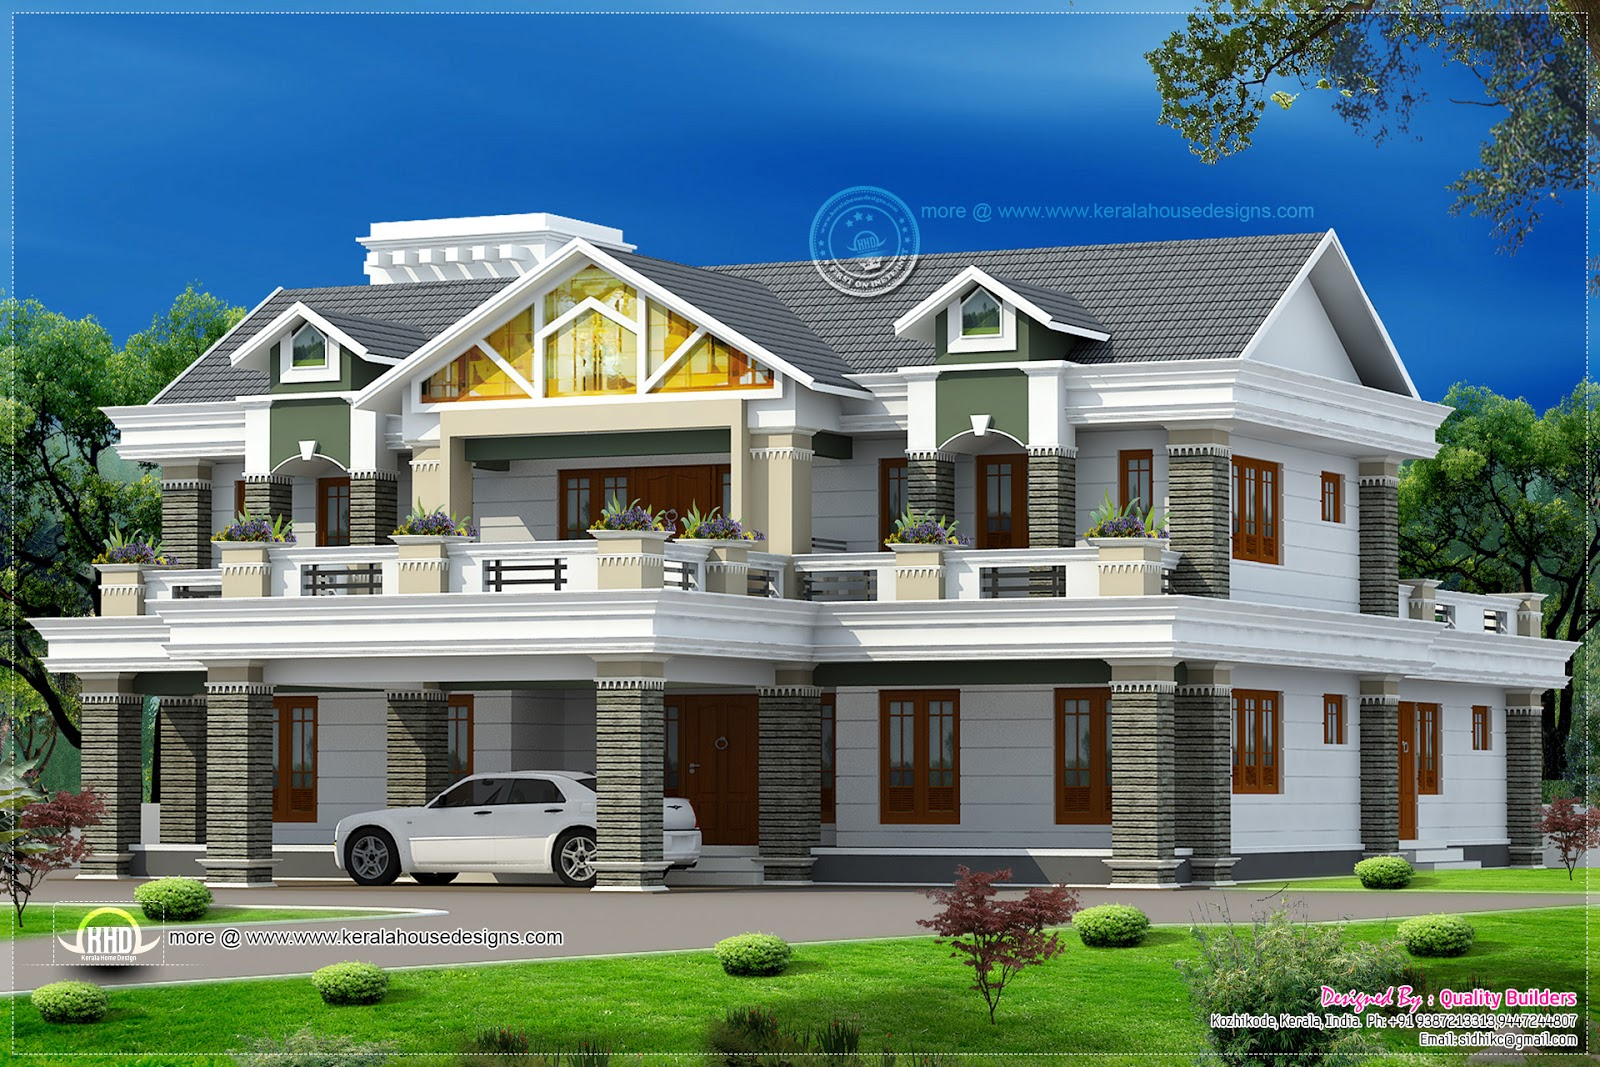 5935 Super Luxury Home Design Kerala Home Design And Floor Plans